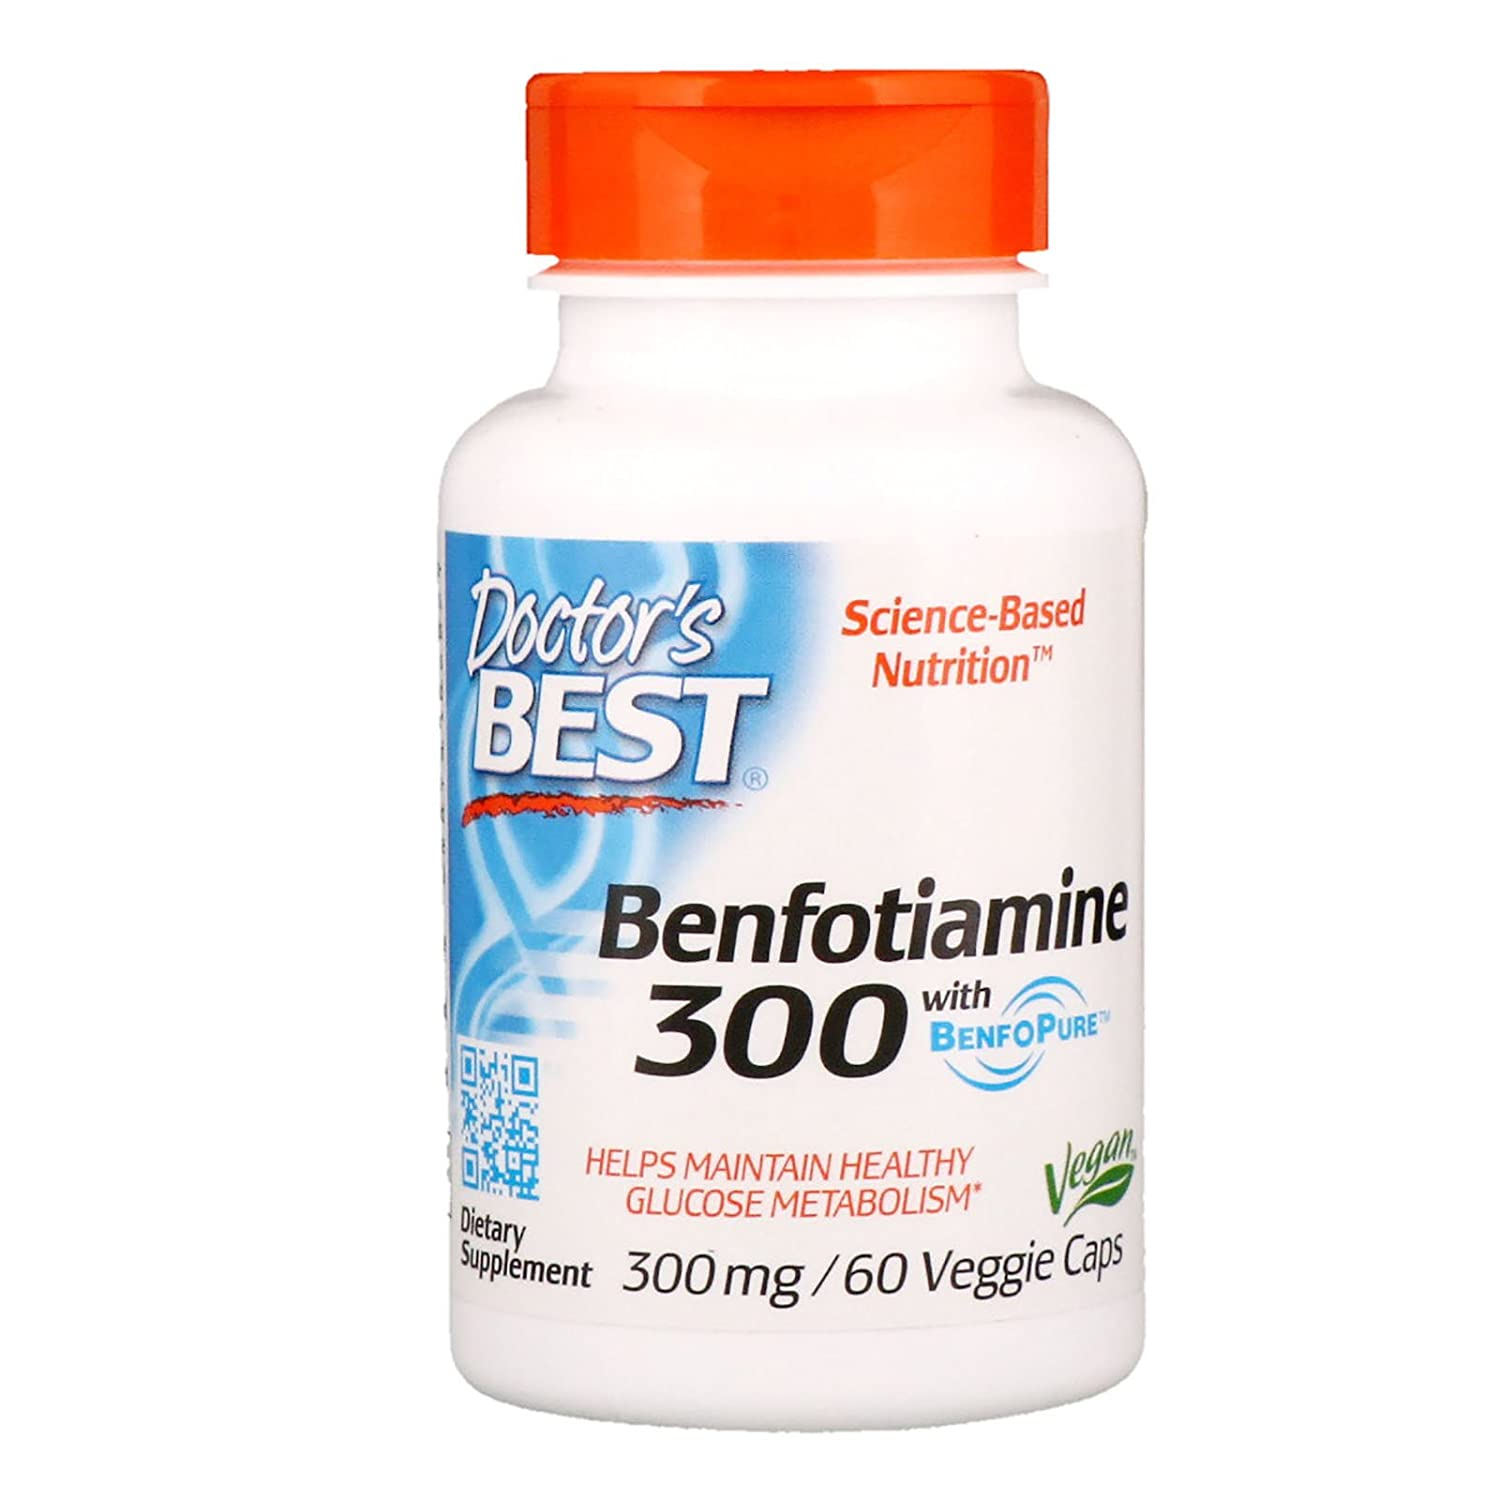 Doctor s Best Benfotiamine 300 mg – 60 ct Pack of 2